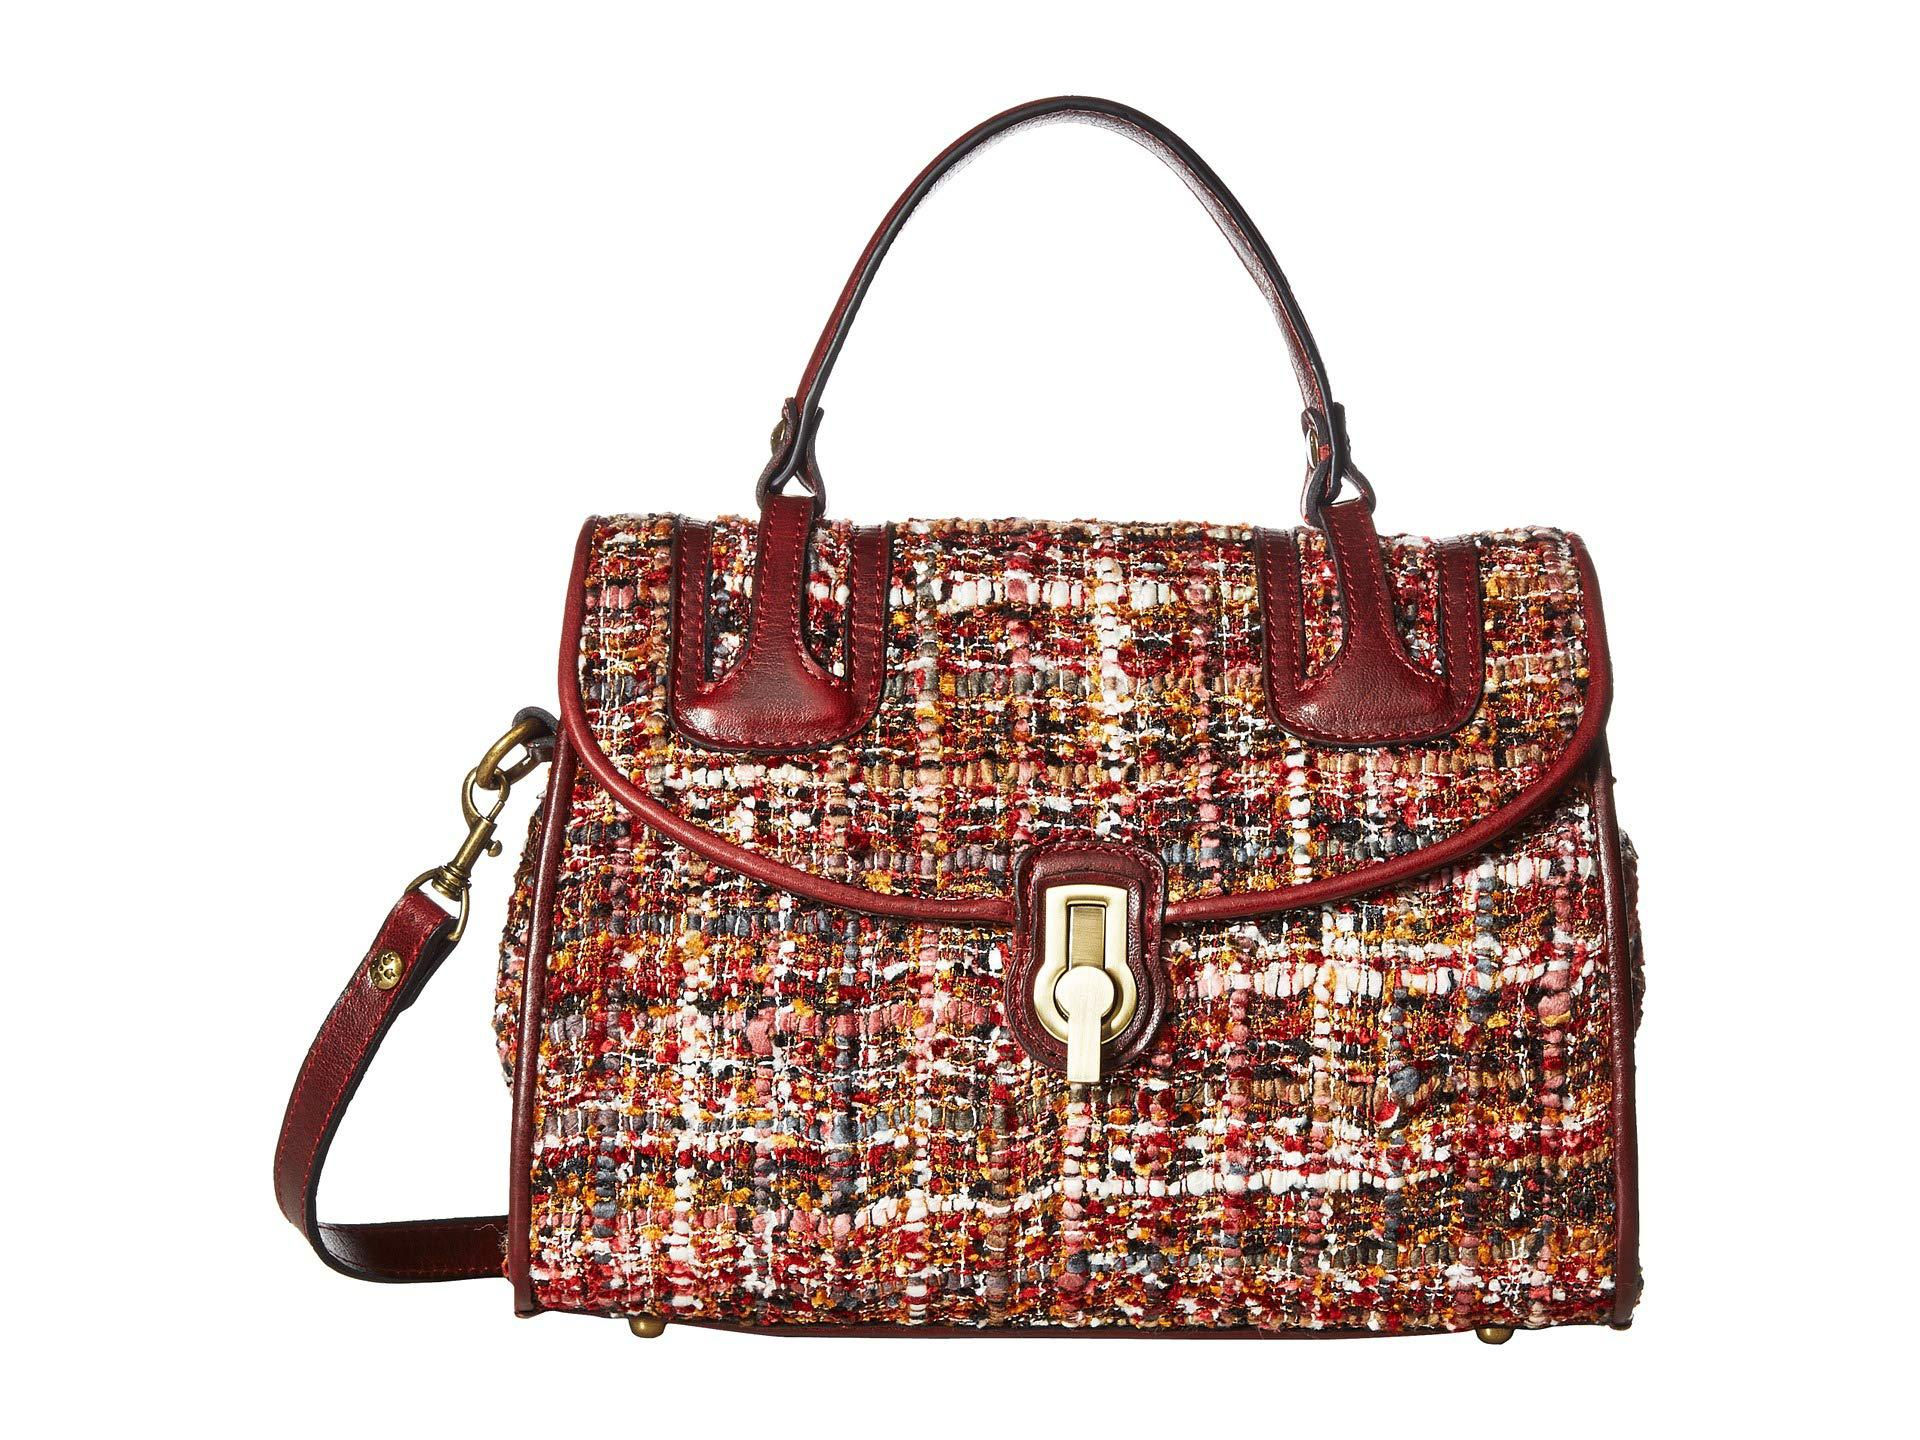 dc3e37b17a62 Lyst - Patricia Nash Stintino Satchel in Red - Save 19%